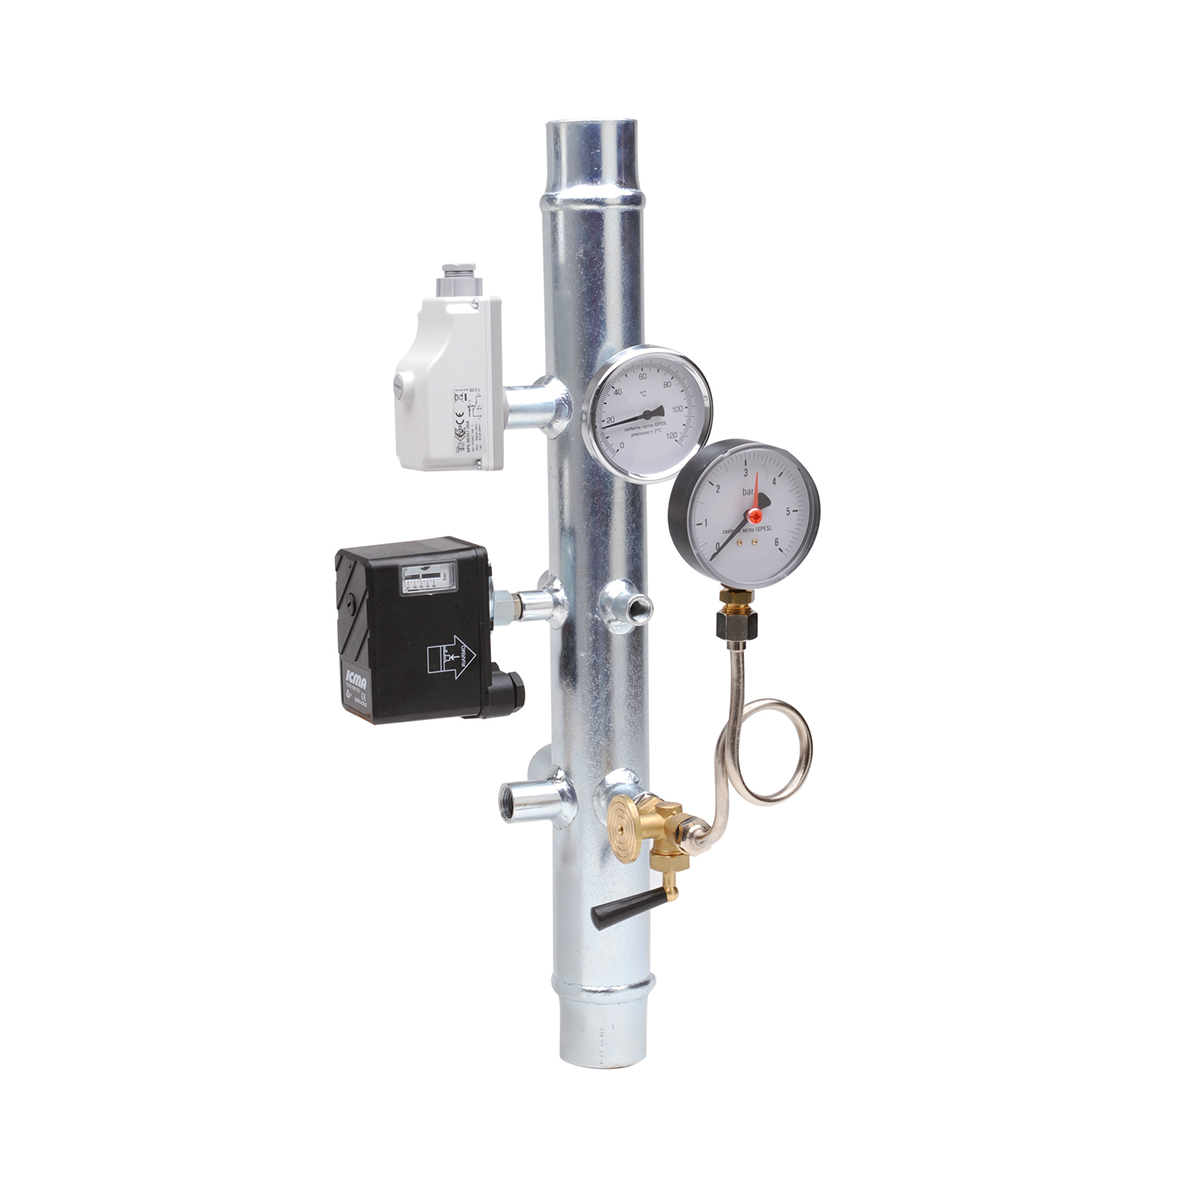 INAIL instrument holding stub for central heating systems